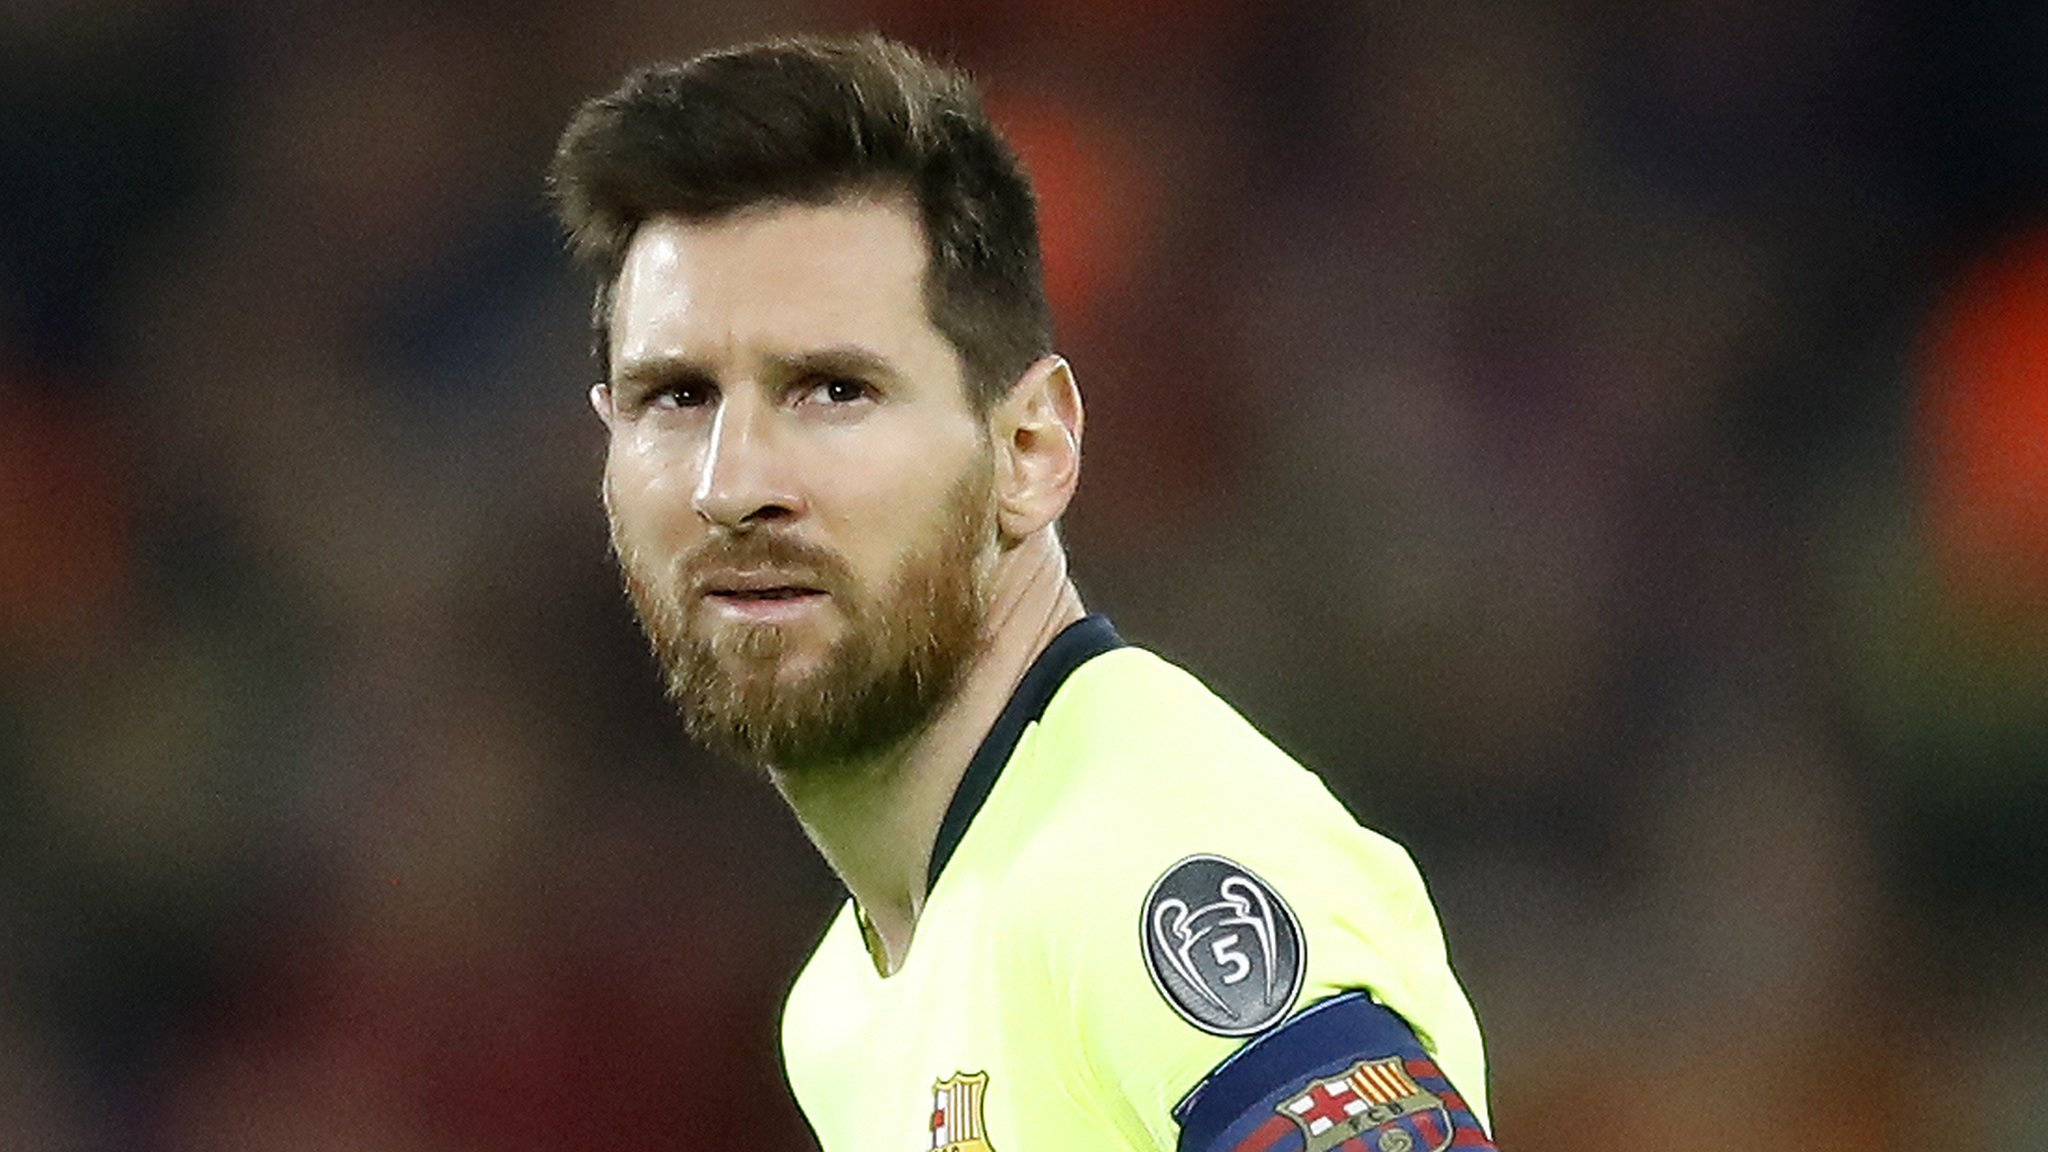 'Liverpool defeat one of my worst moments' - Messi seeks Copa del Rey redemption